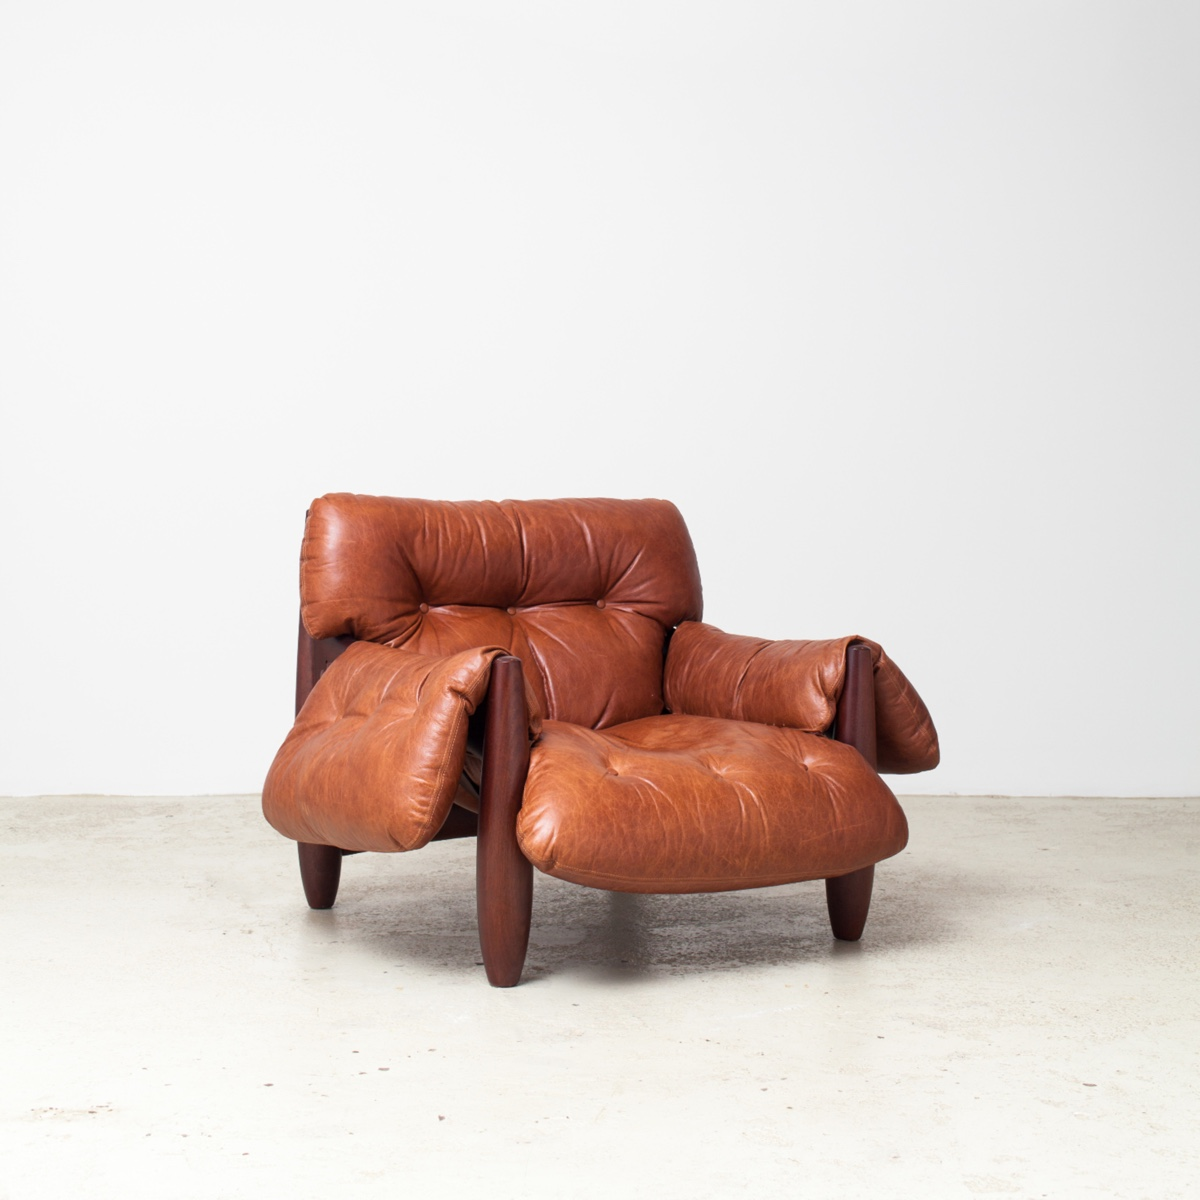 The 1961 Mole armchair bySergio Rodrigues is considered his most iconic piece.